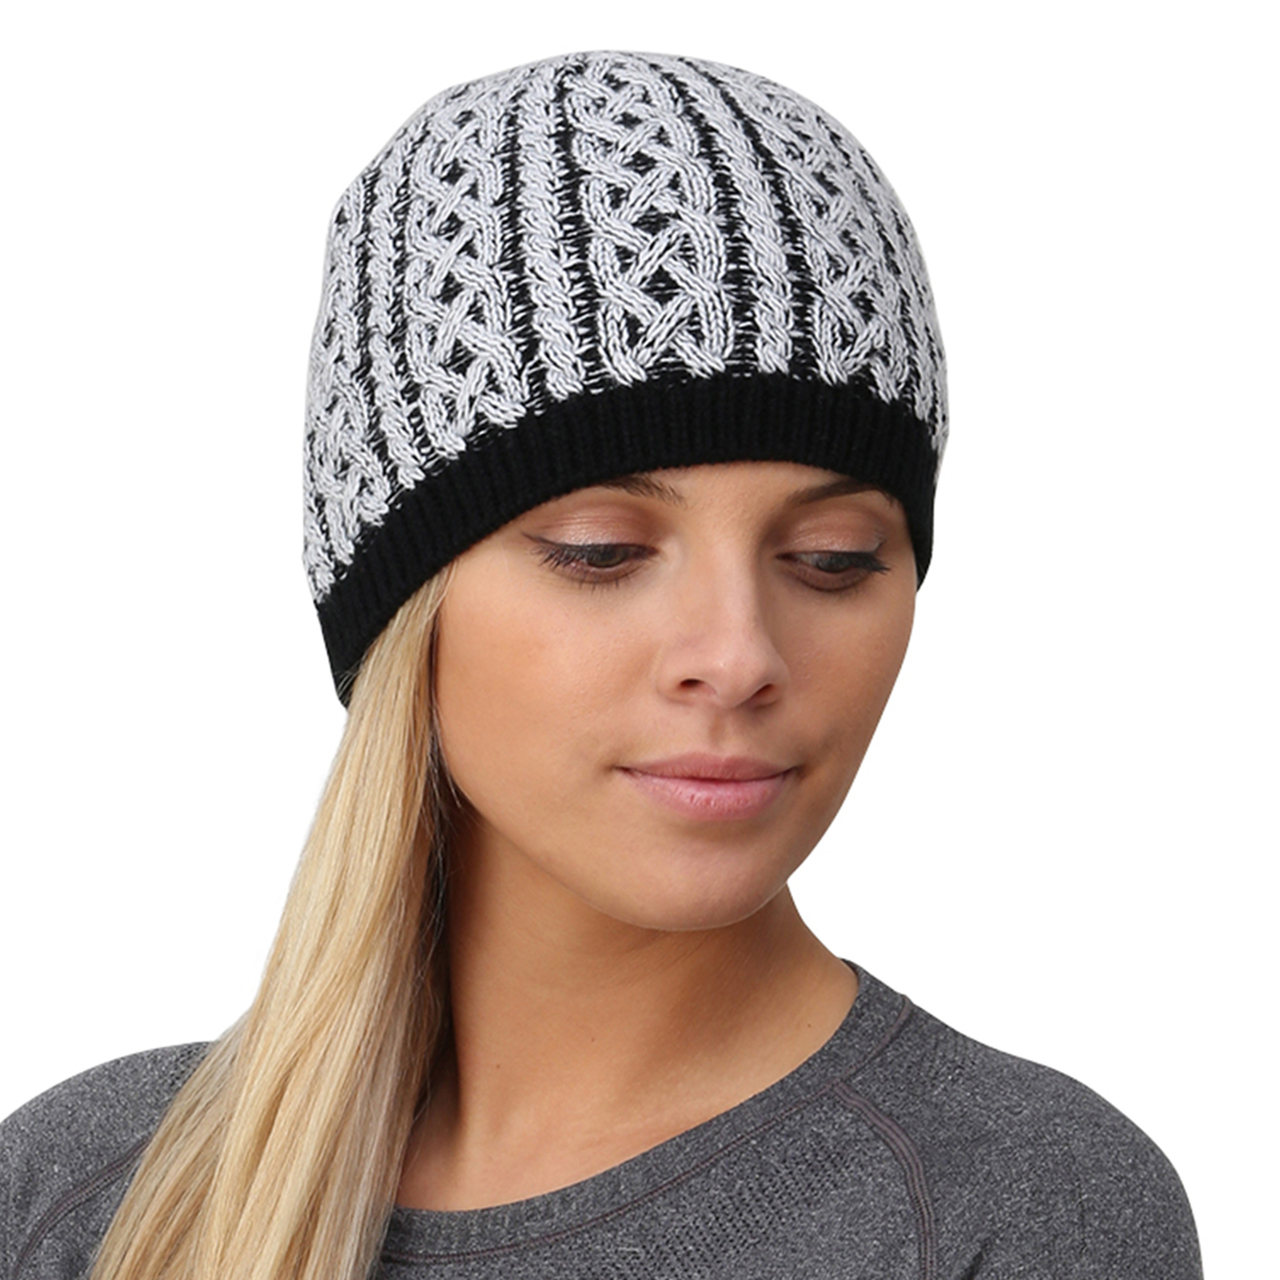 04d3c5efdfe TrailHeads Cable Knit Women s Winter Beanie - black   white